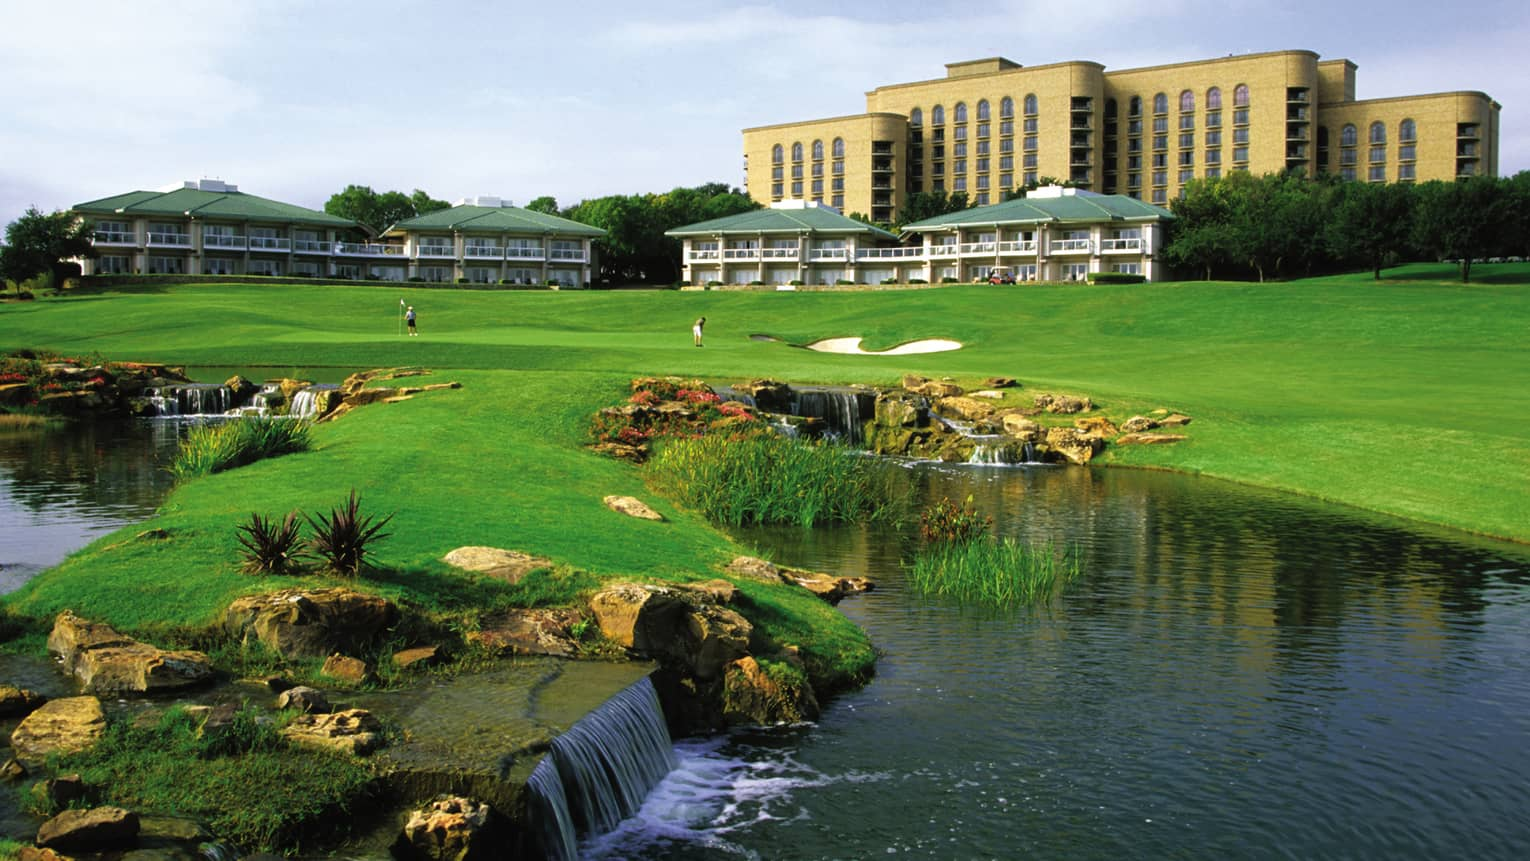 Small waterfalls, rocks, pond by golfers on green in front of TPC Four Seasons Las Colinas golf course